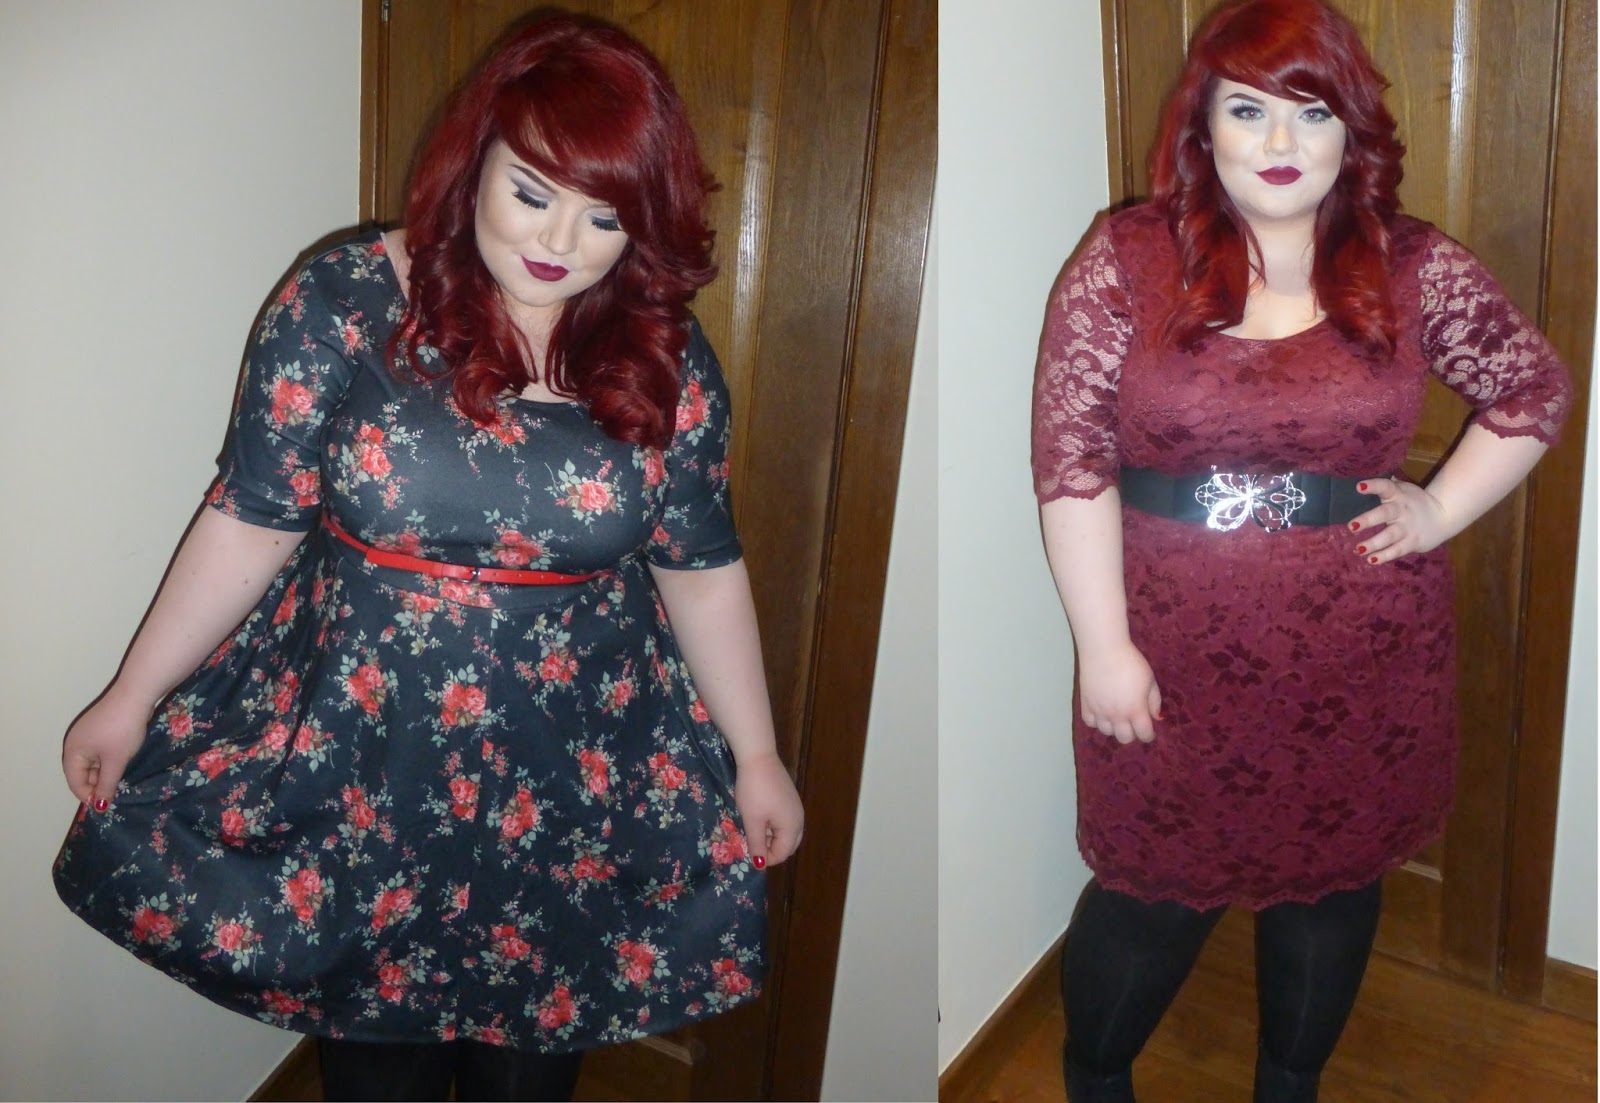 a3bc58f3243f6 Boohoo Plus Size Range Review - She Might Be Loved